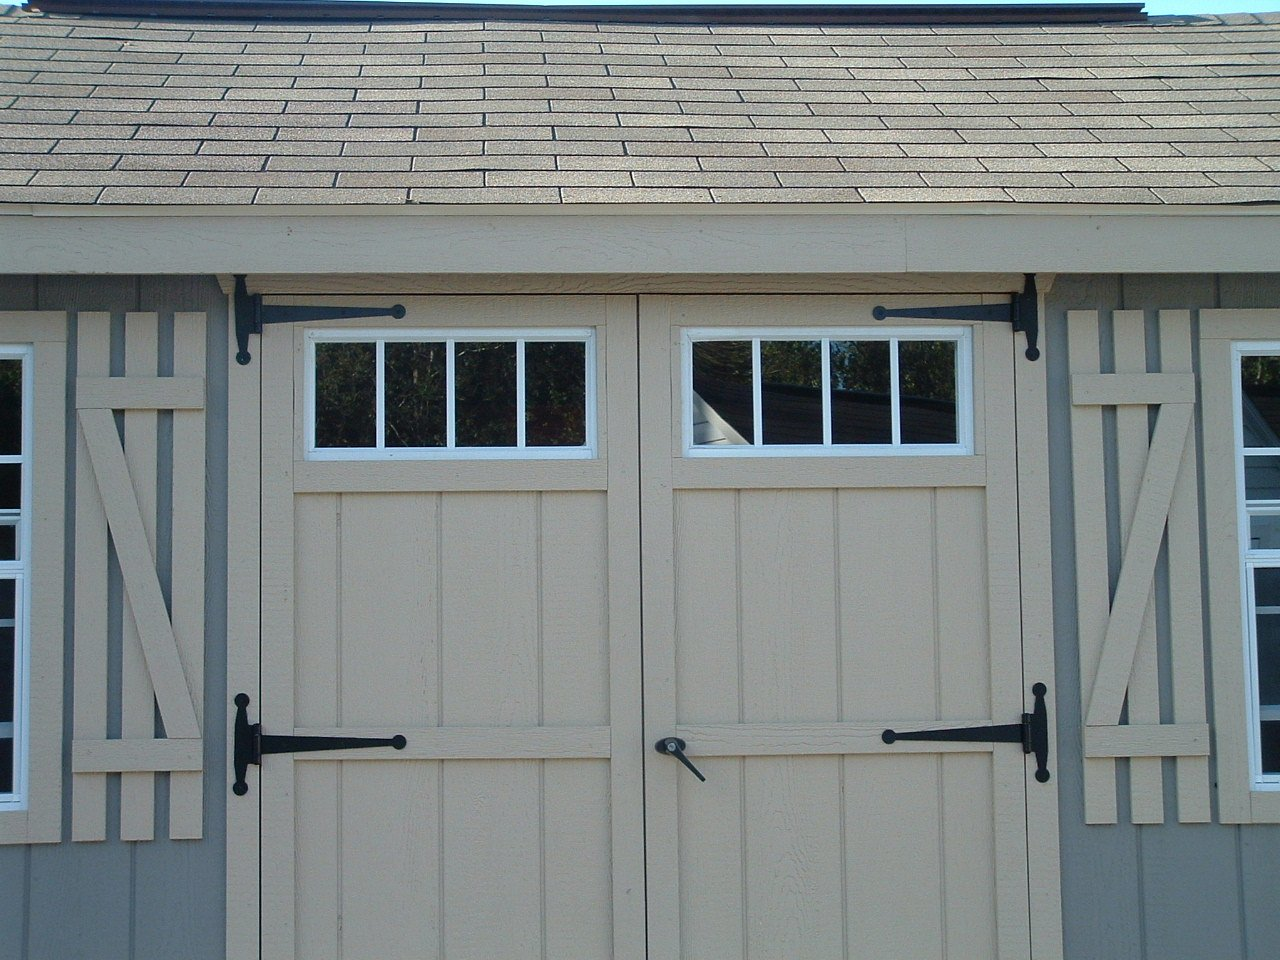 Shed Transom Window 10'' X 23'' White Flush by Shed Windows and More (Image #2)